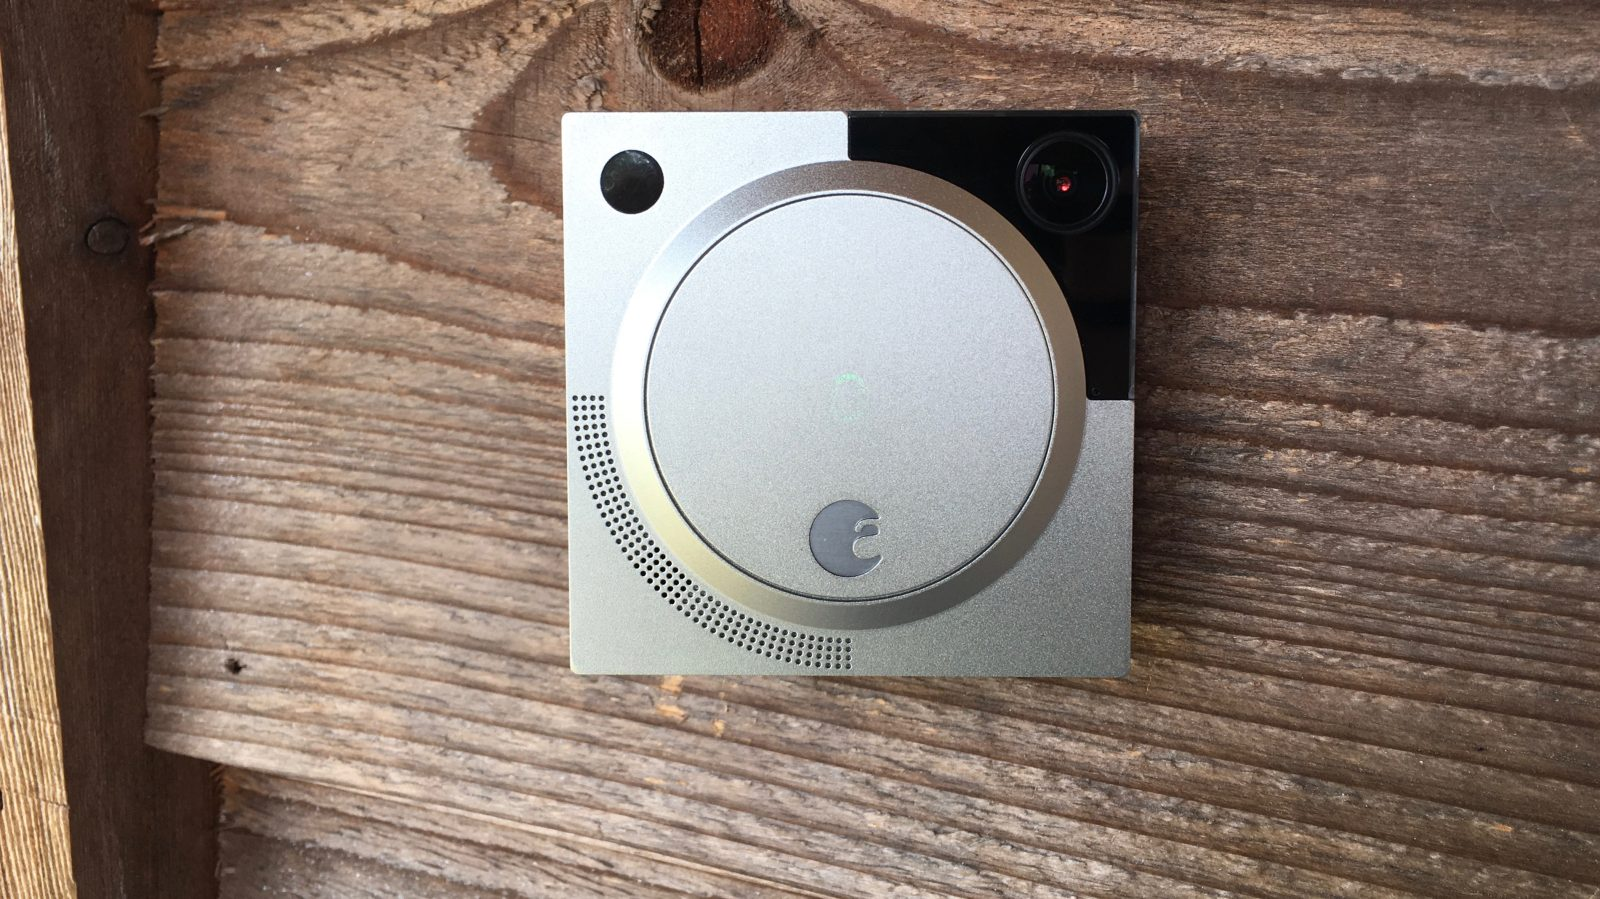 August denies doorbell camera HomeKit support despite user claim